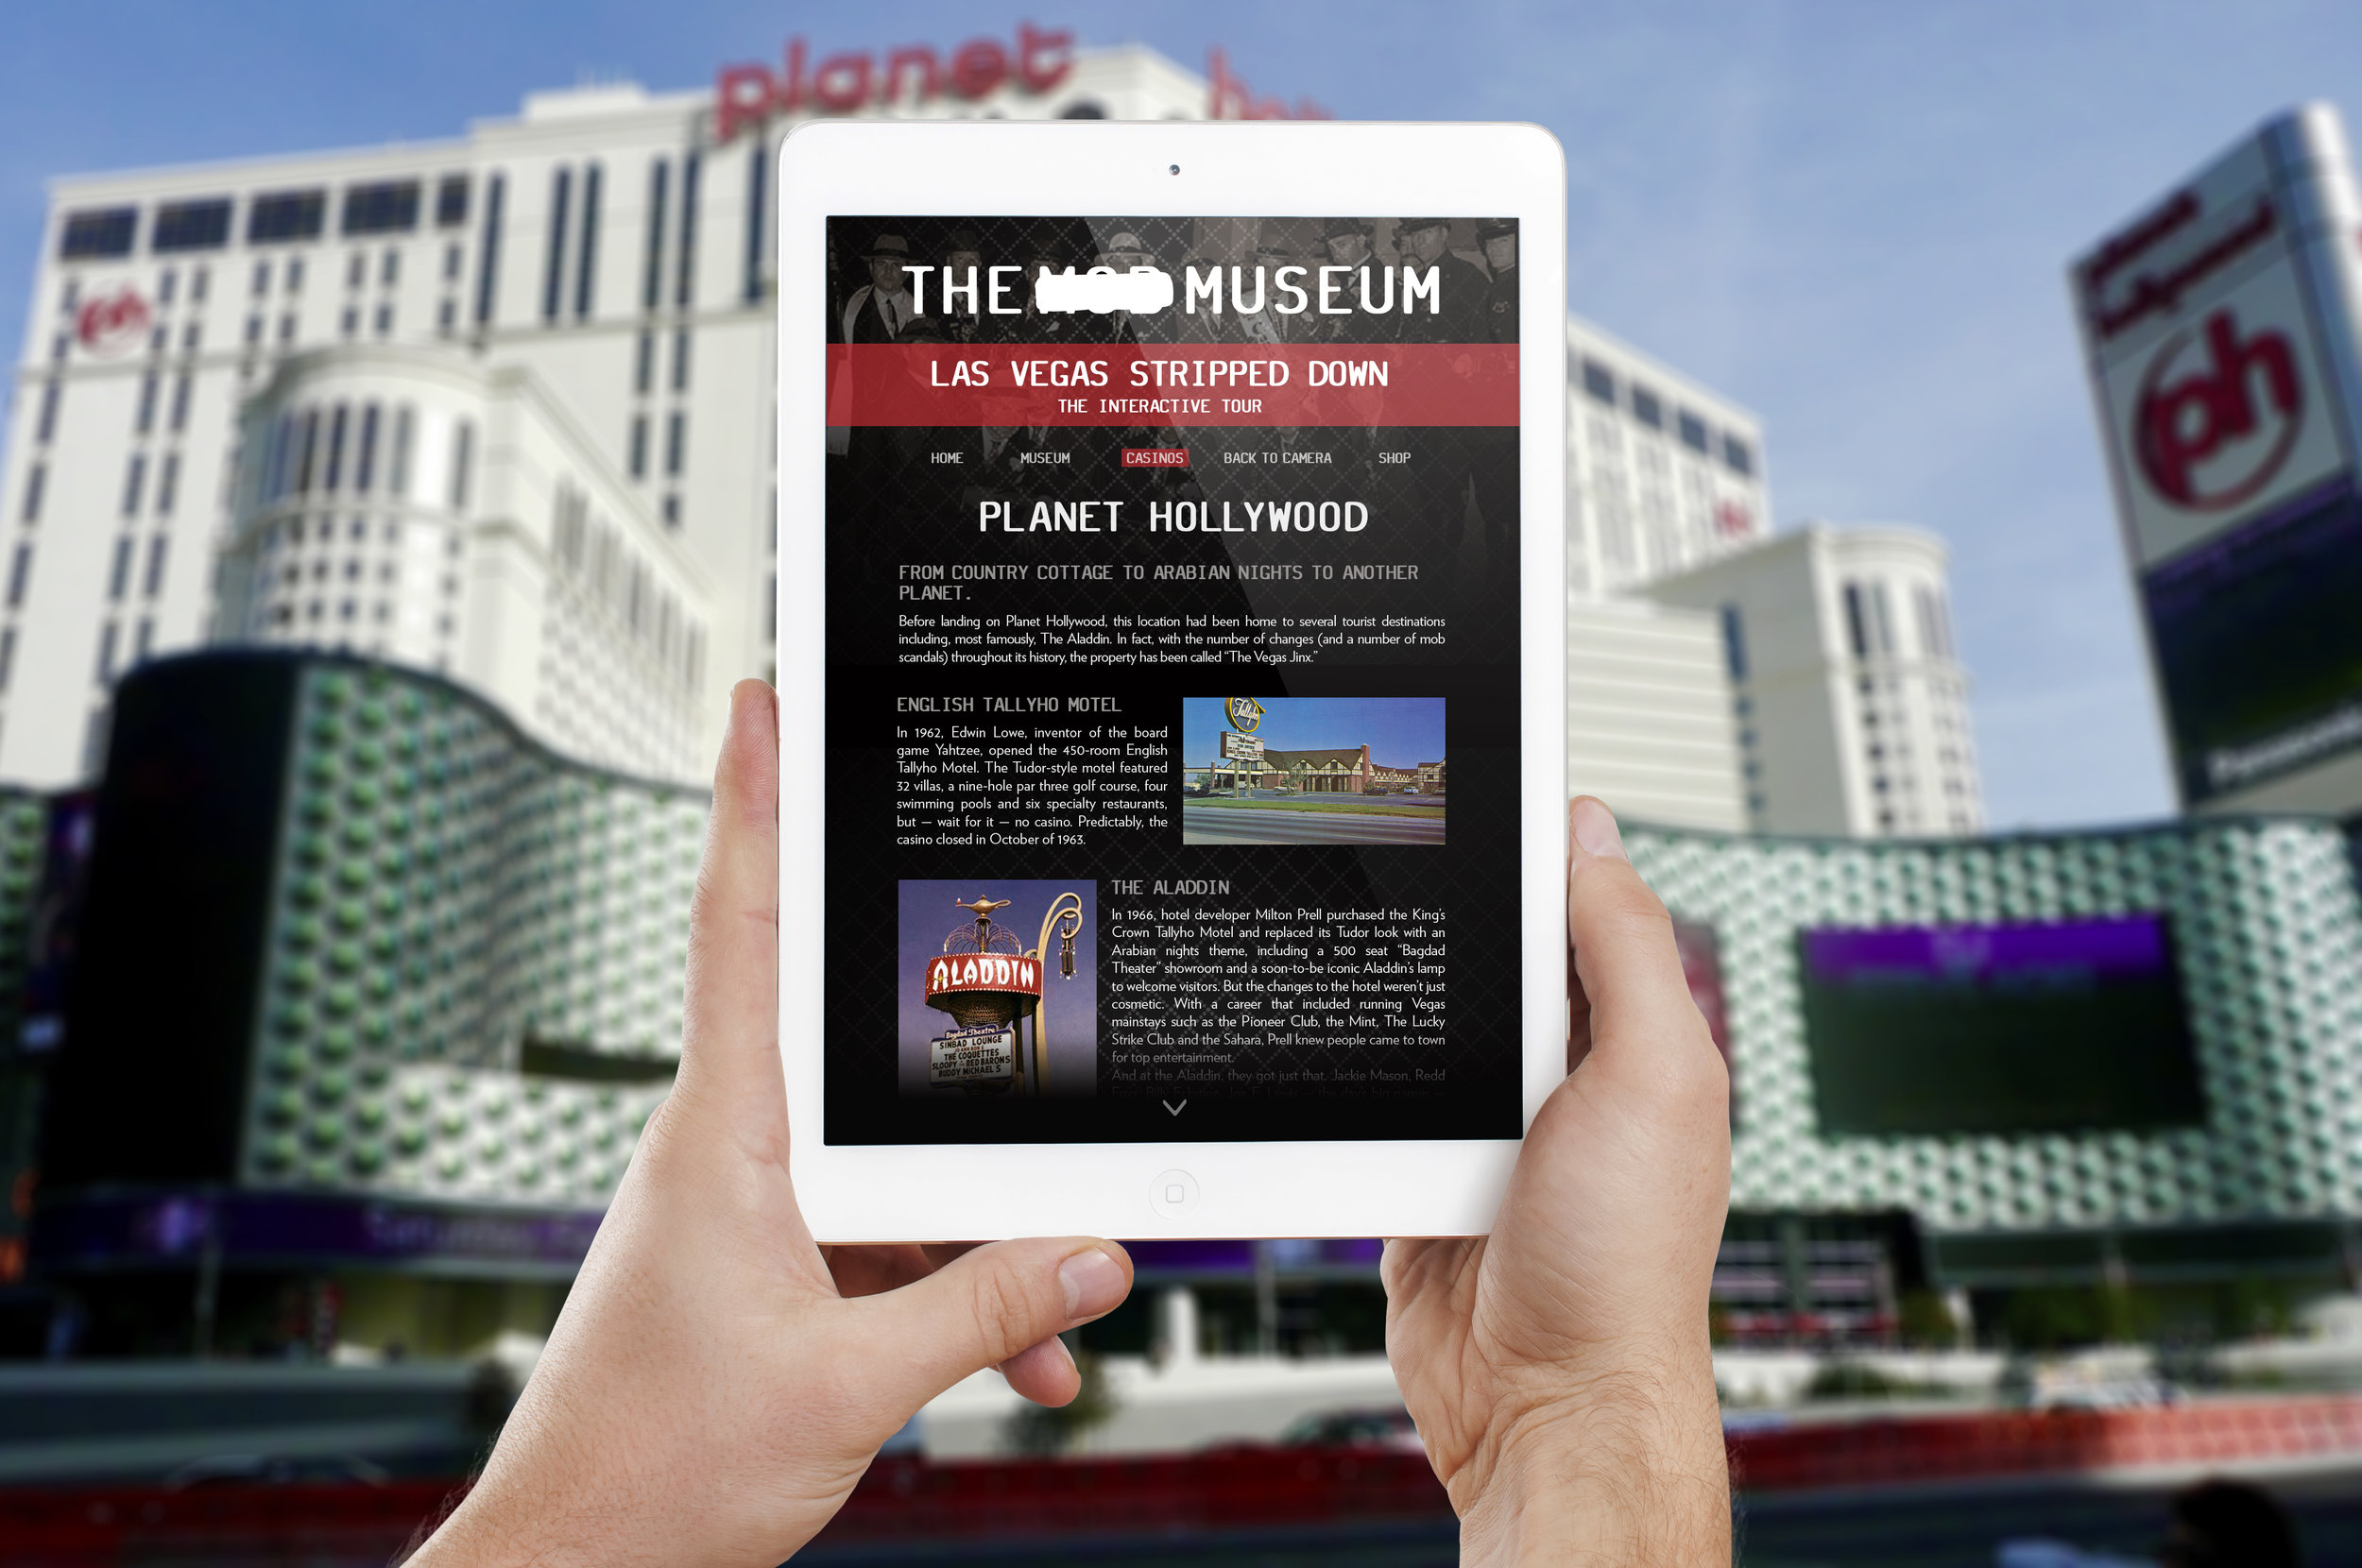 The iPad app is a walking tour of the city: Hold the iPad up to the location and get its history, from dusty military stop to Sin City.